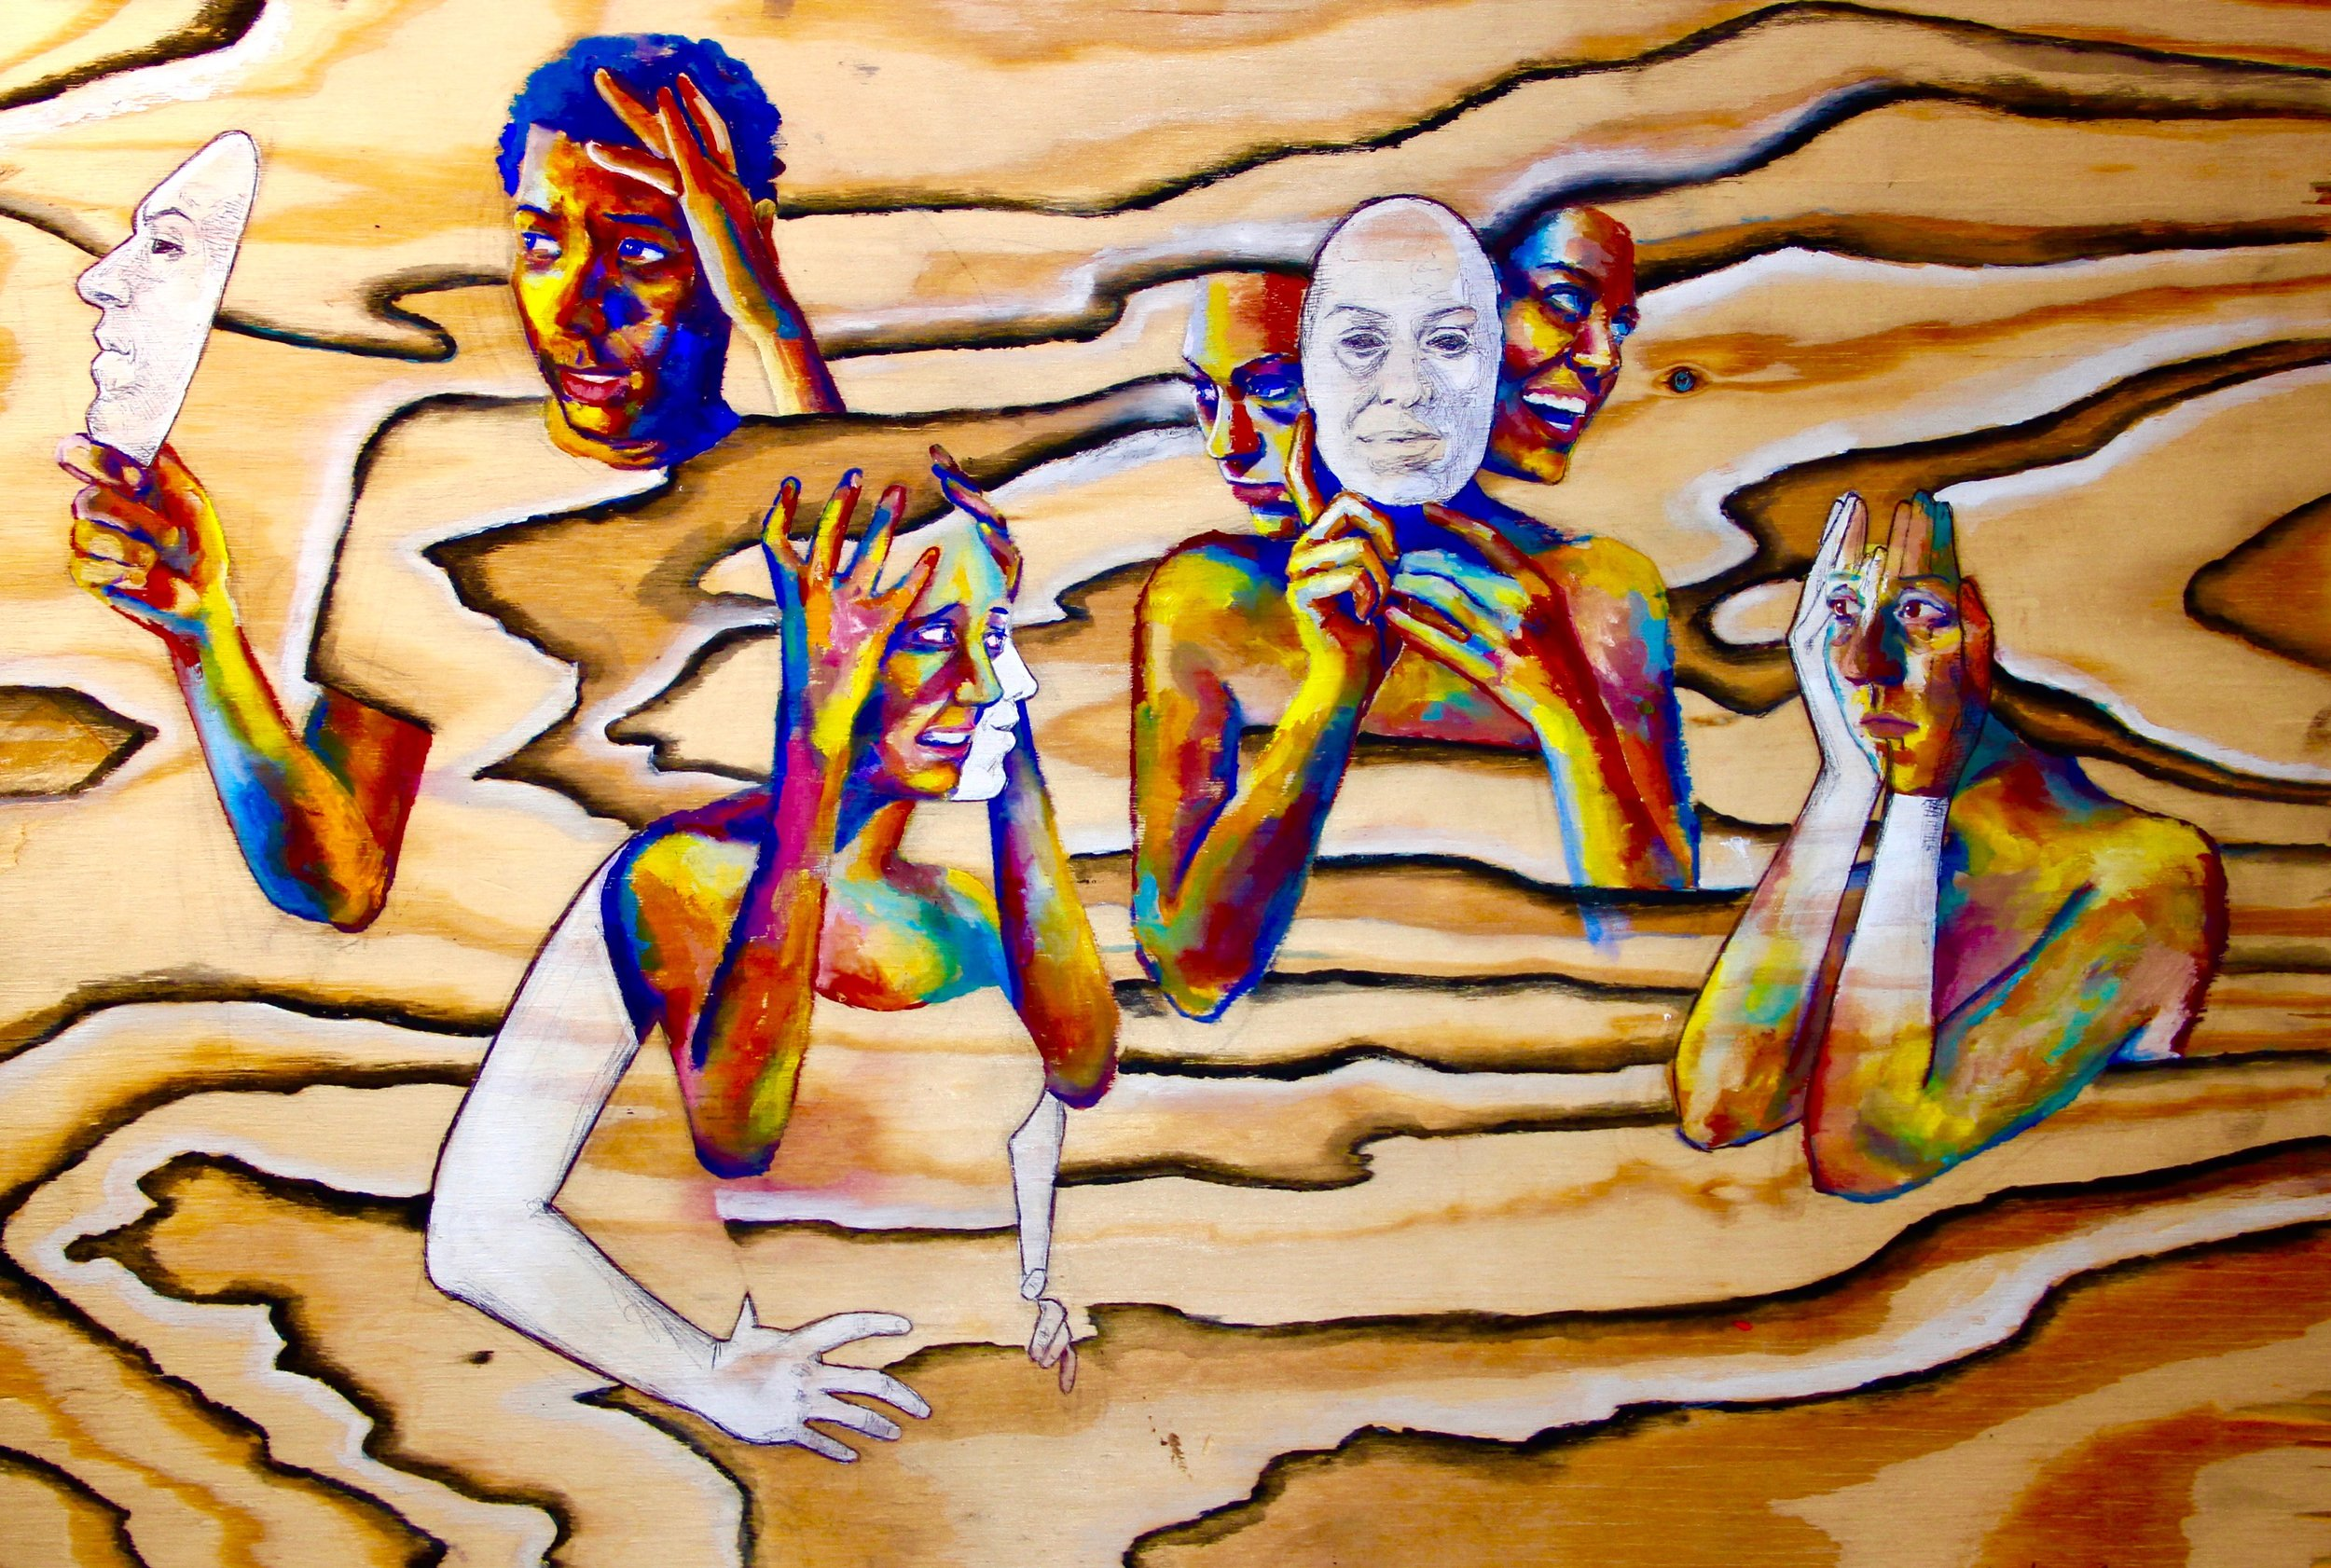 Shoudn't Disguise Mental Disorders 2015, gouache & bic pen on wood From left: PTSD, Schizophrenia, Bipolar, Depression